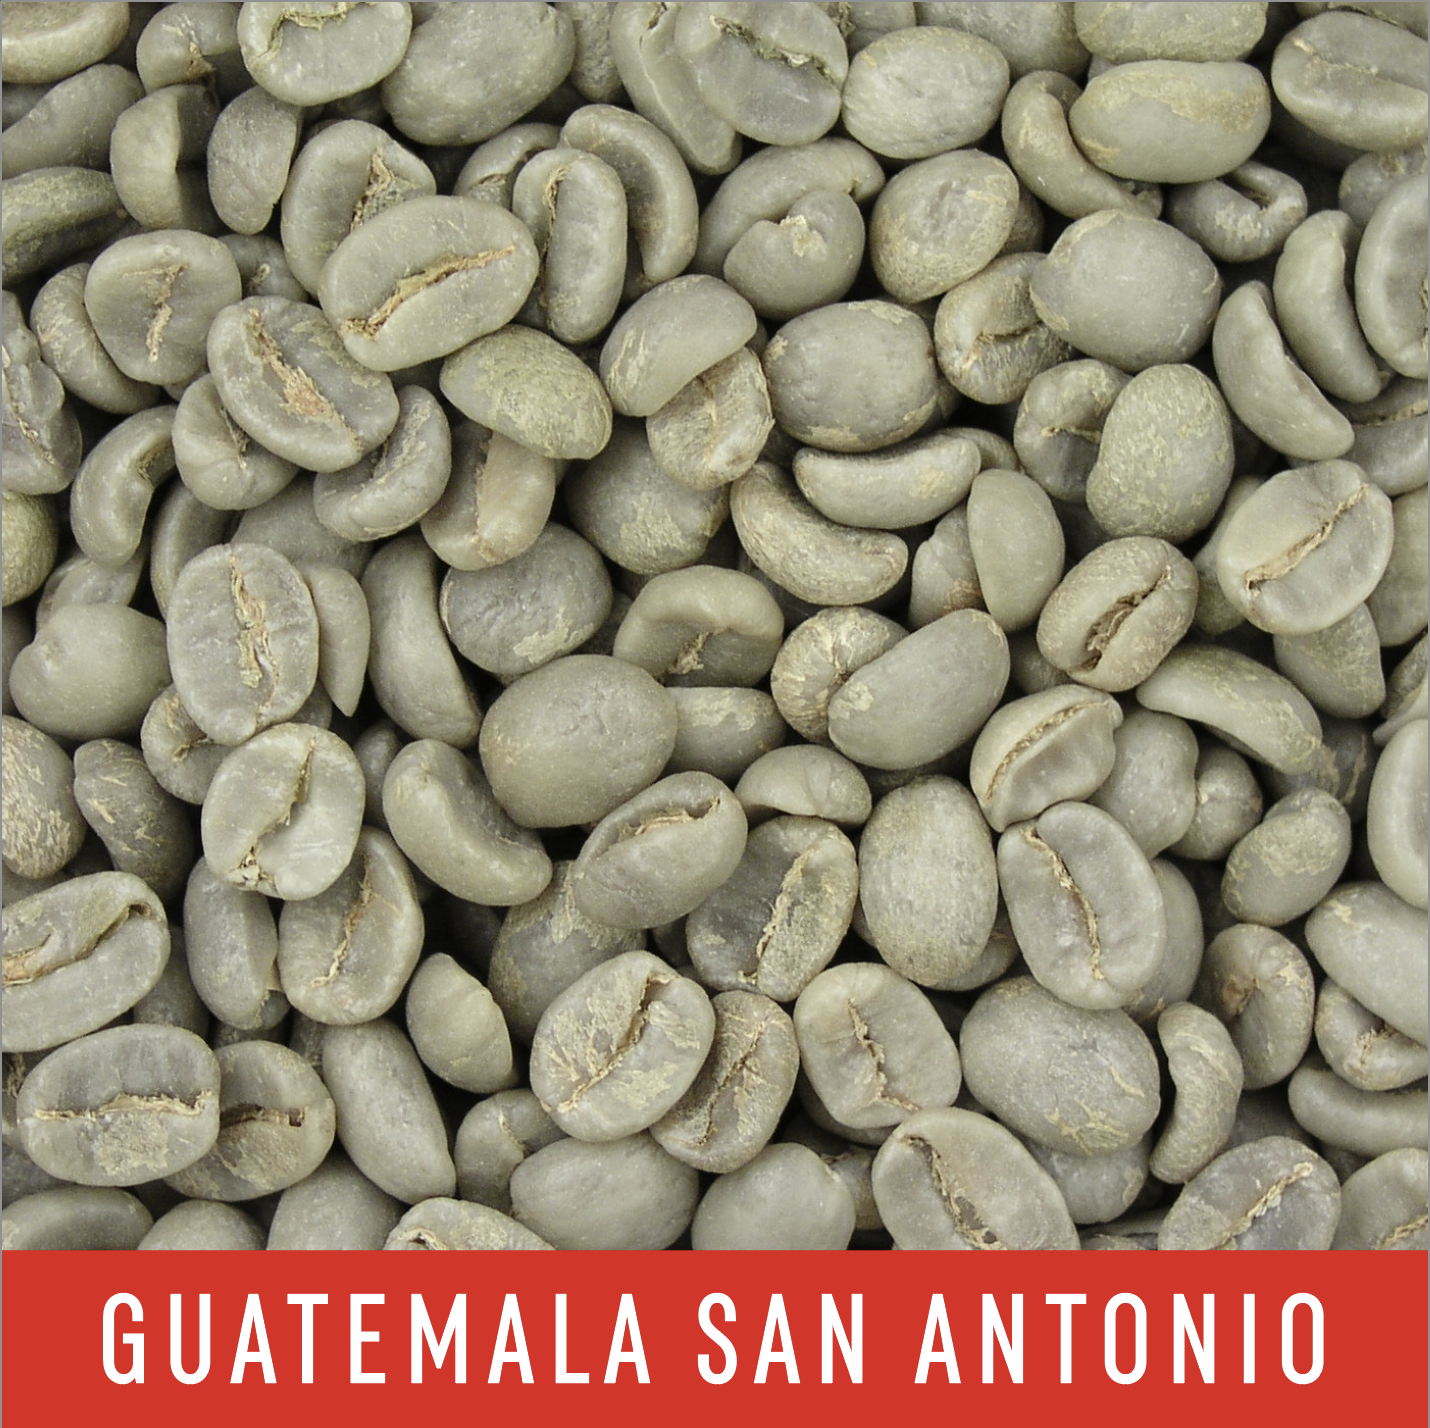 Green Coffee Beans: Guatemala San Antonio - 1 LB